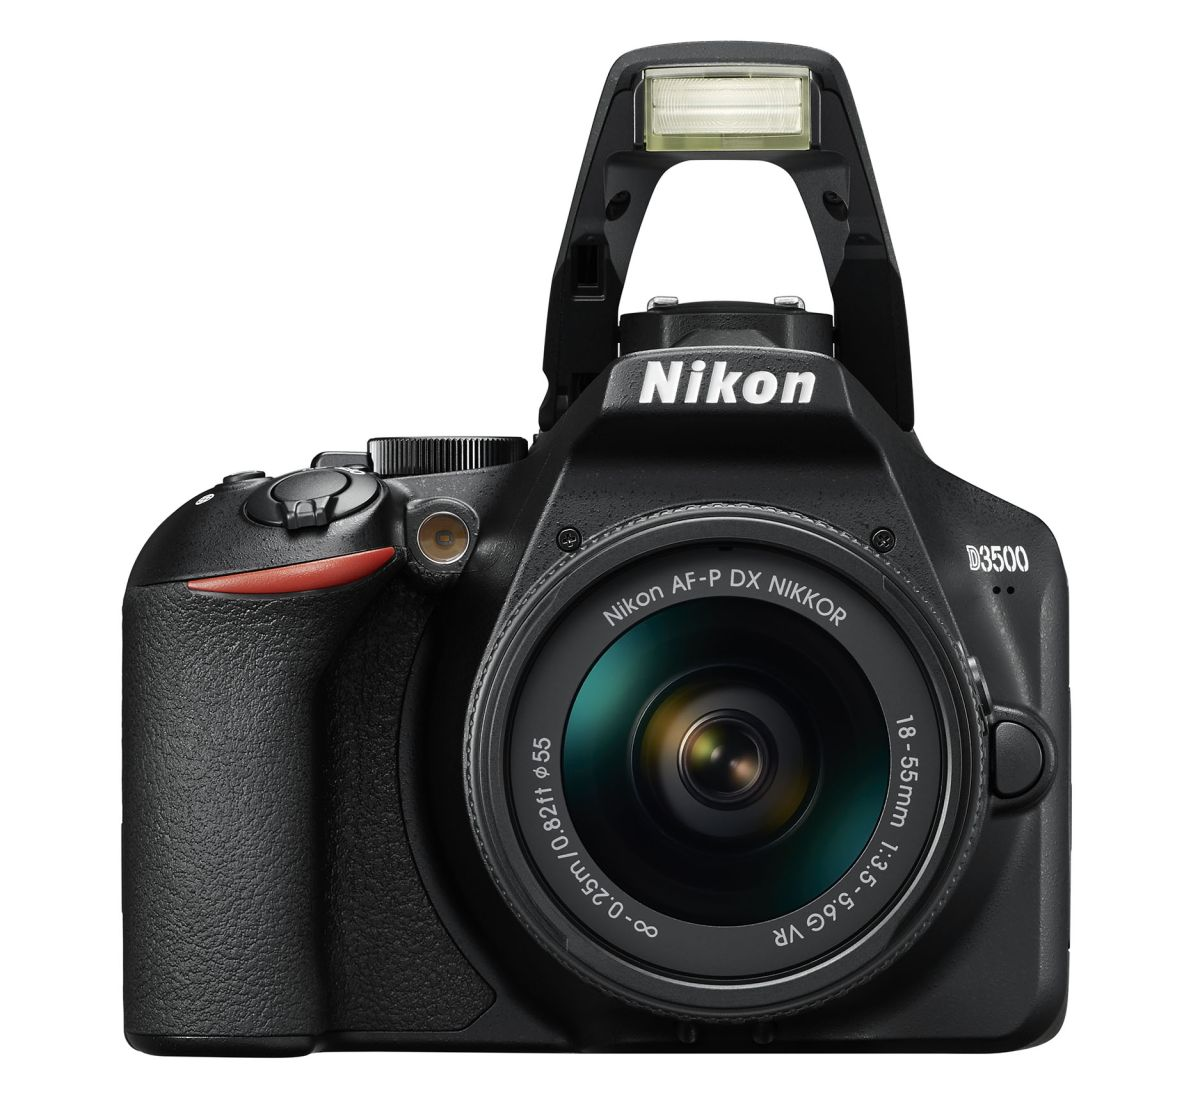 Nikon D3500: smaller, lighter, and cheaper successor to D3400